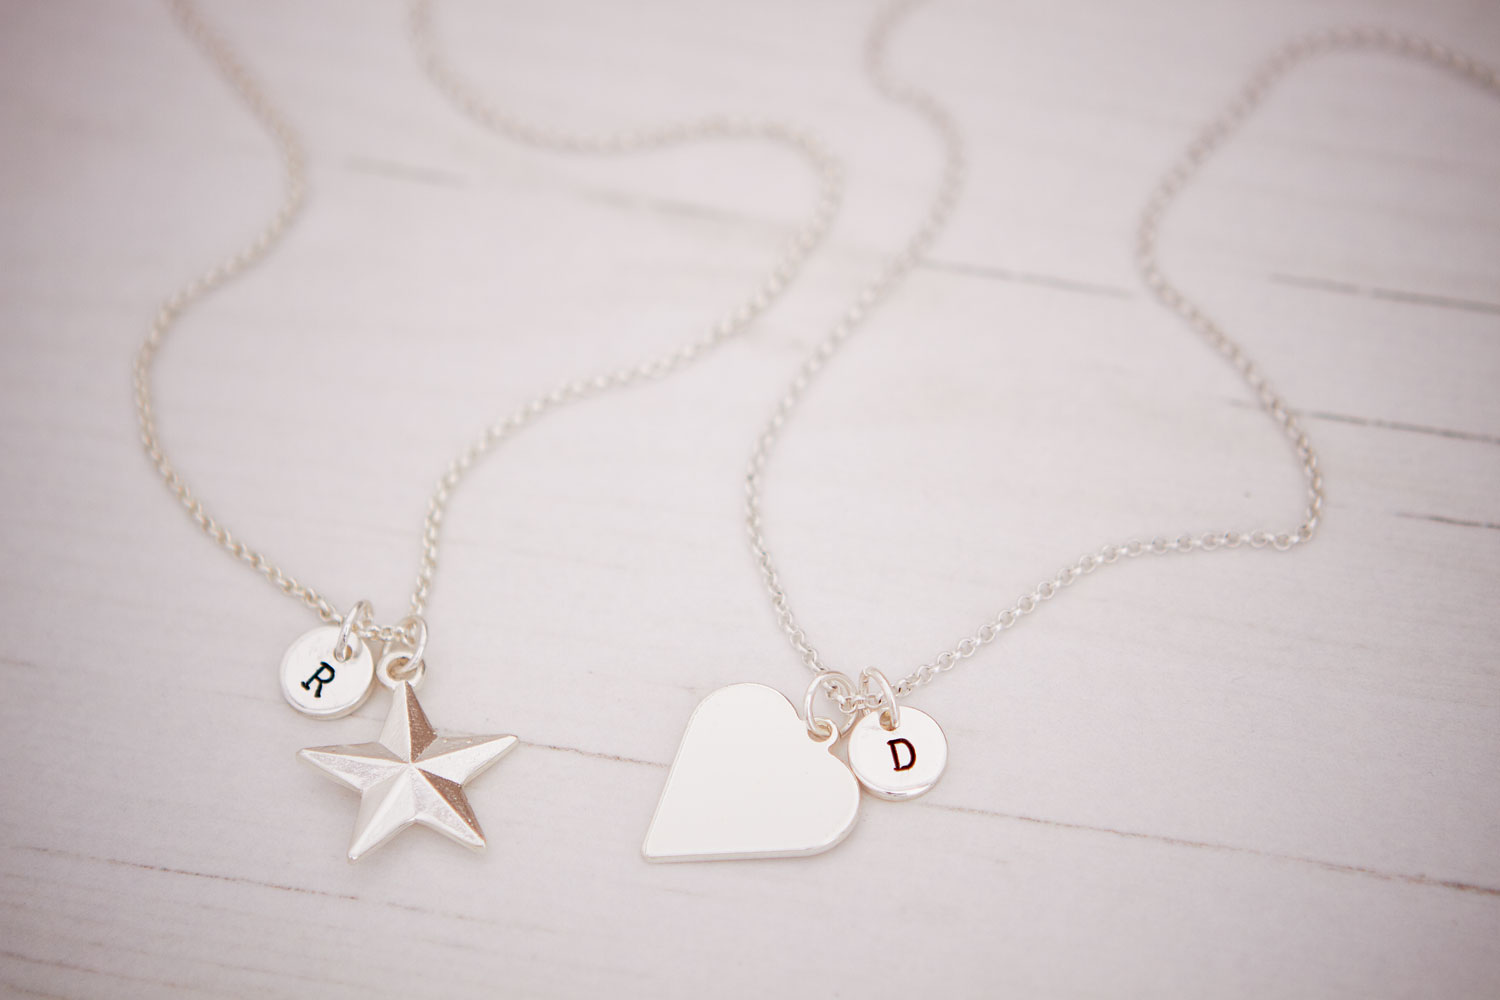 Personalised Ellie Necklaces with initial charms from Design Essentials